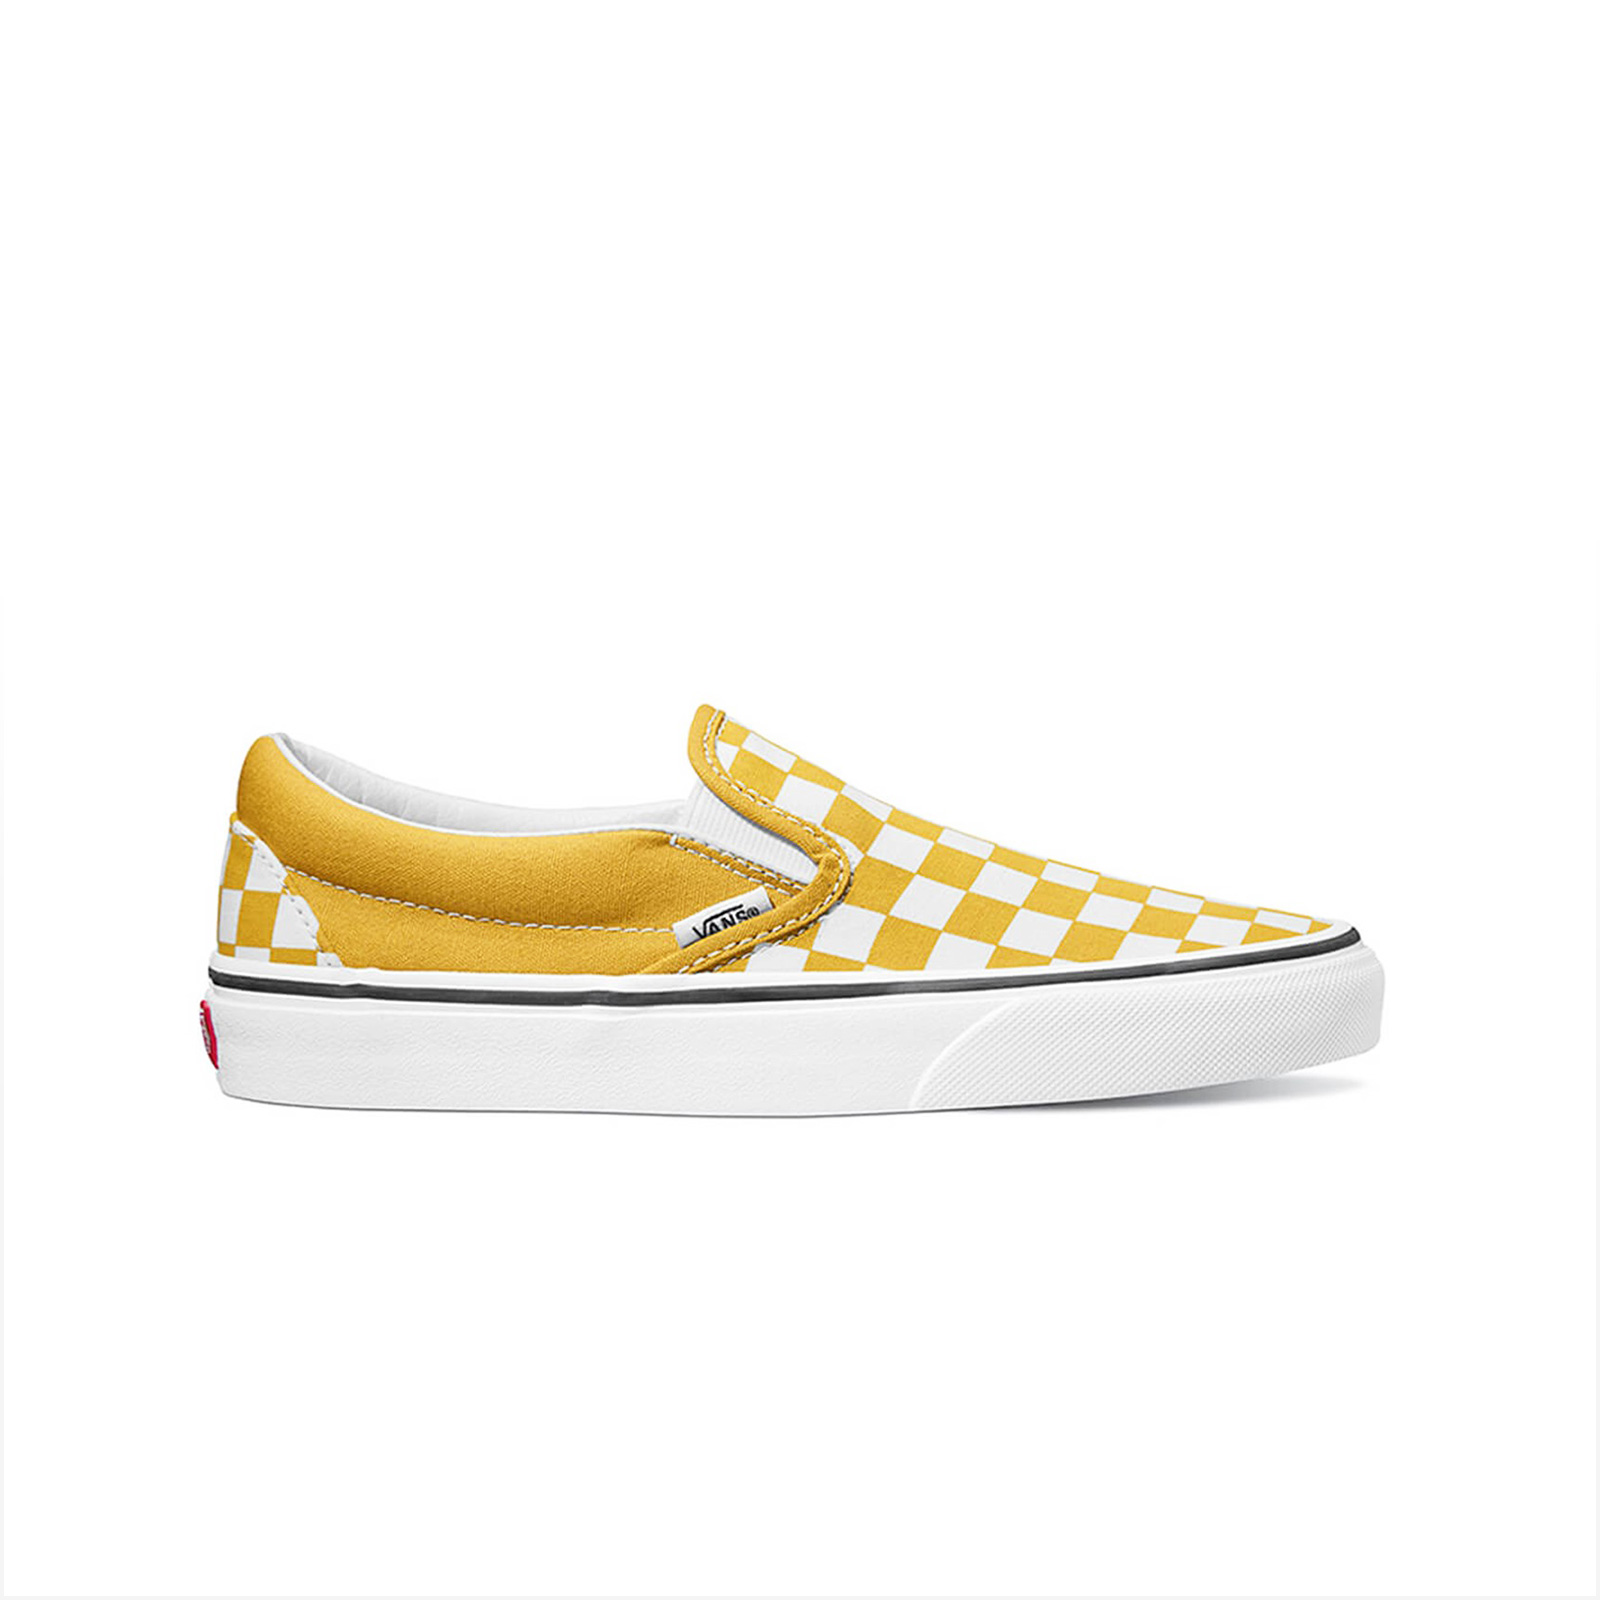 4e8a97ab61 Sportcafe Vans – OLD SKOOL – (CHECKERBOARD) YOLK YELLOW TRUE WHITE